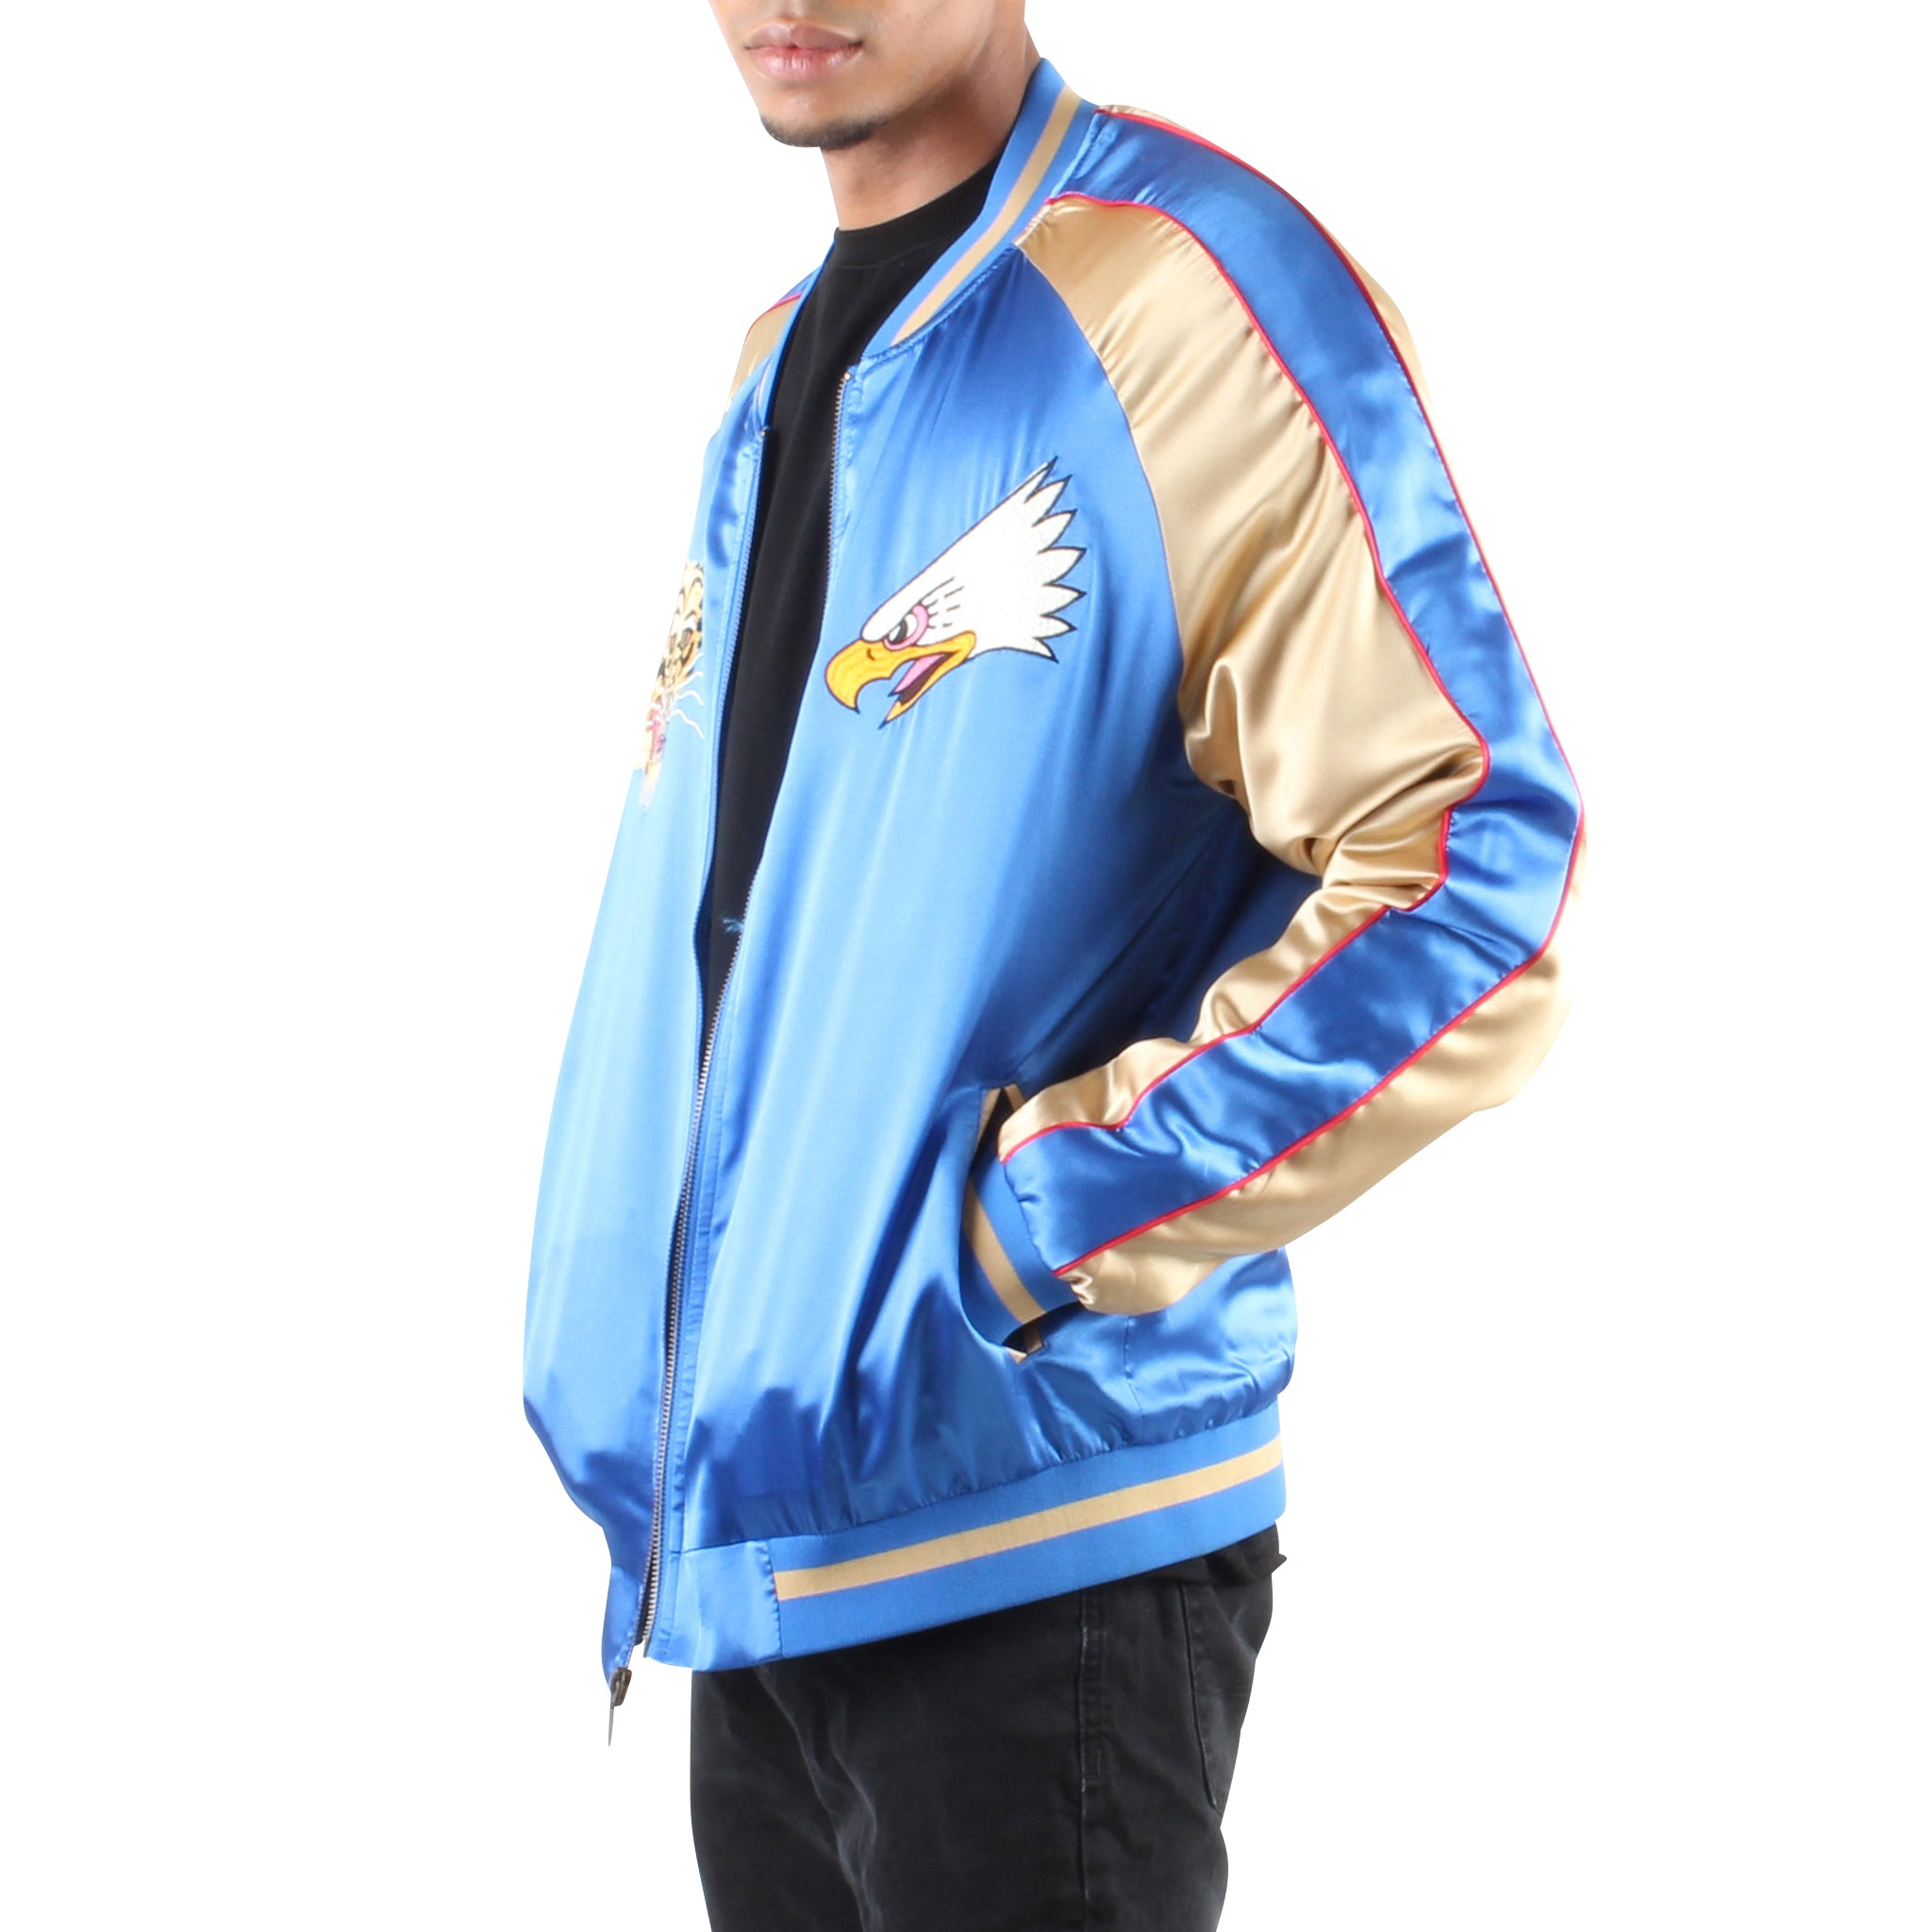 EAGLE TIGER SOUVENIR JACKET